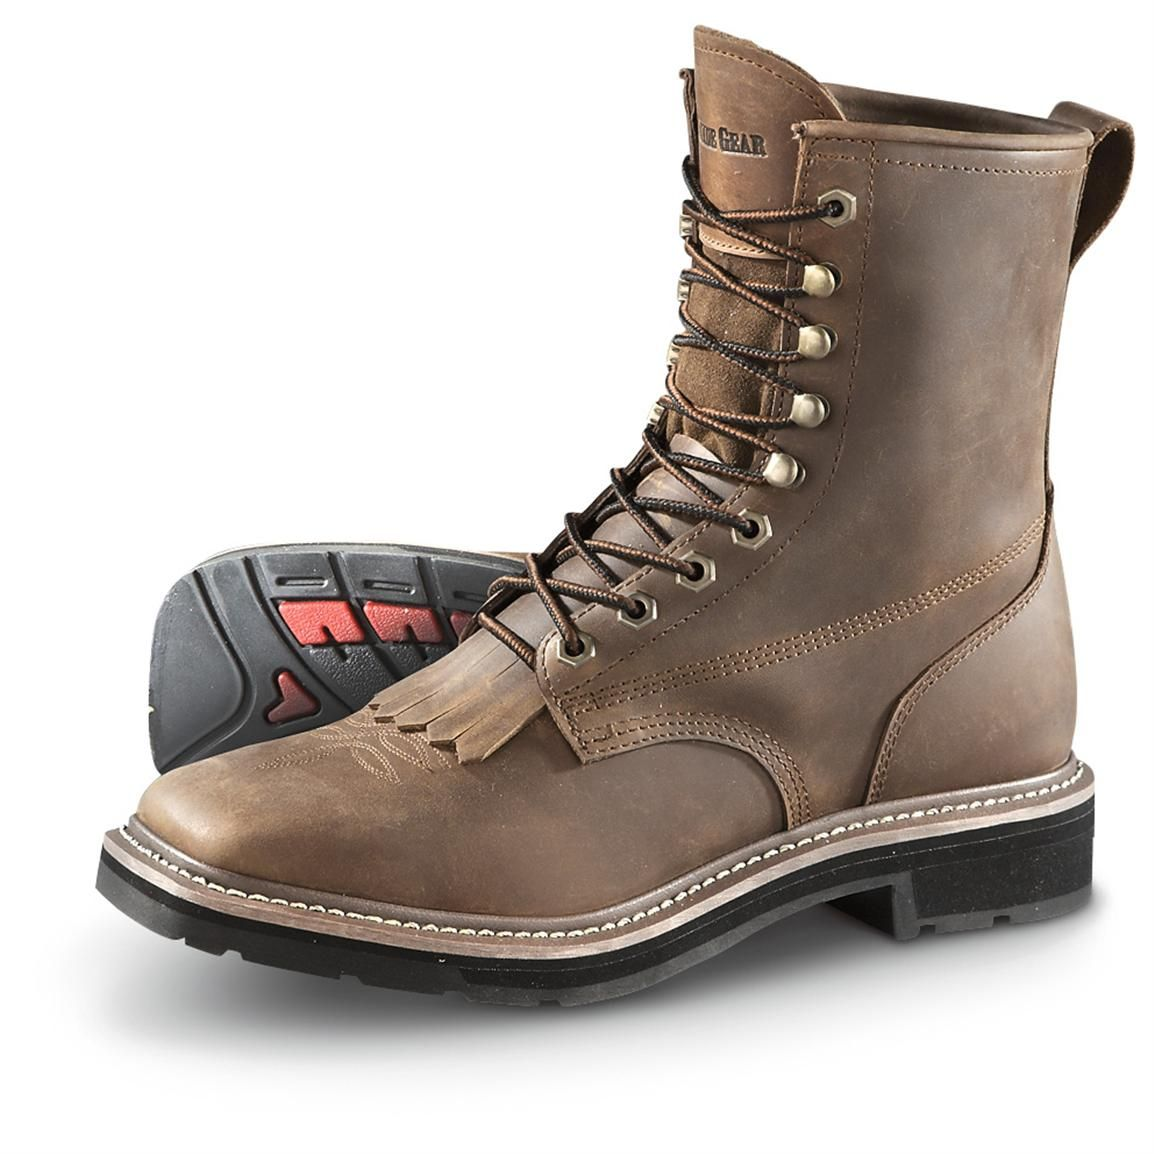 Guide Gear Men's Square Toe Lacer Work Boots